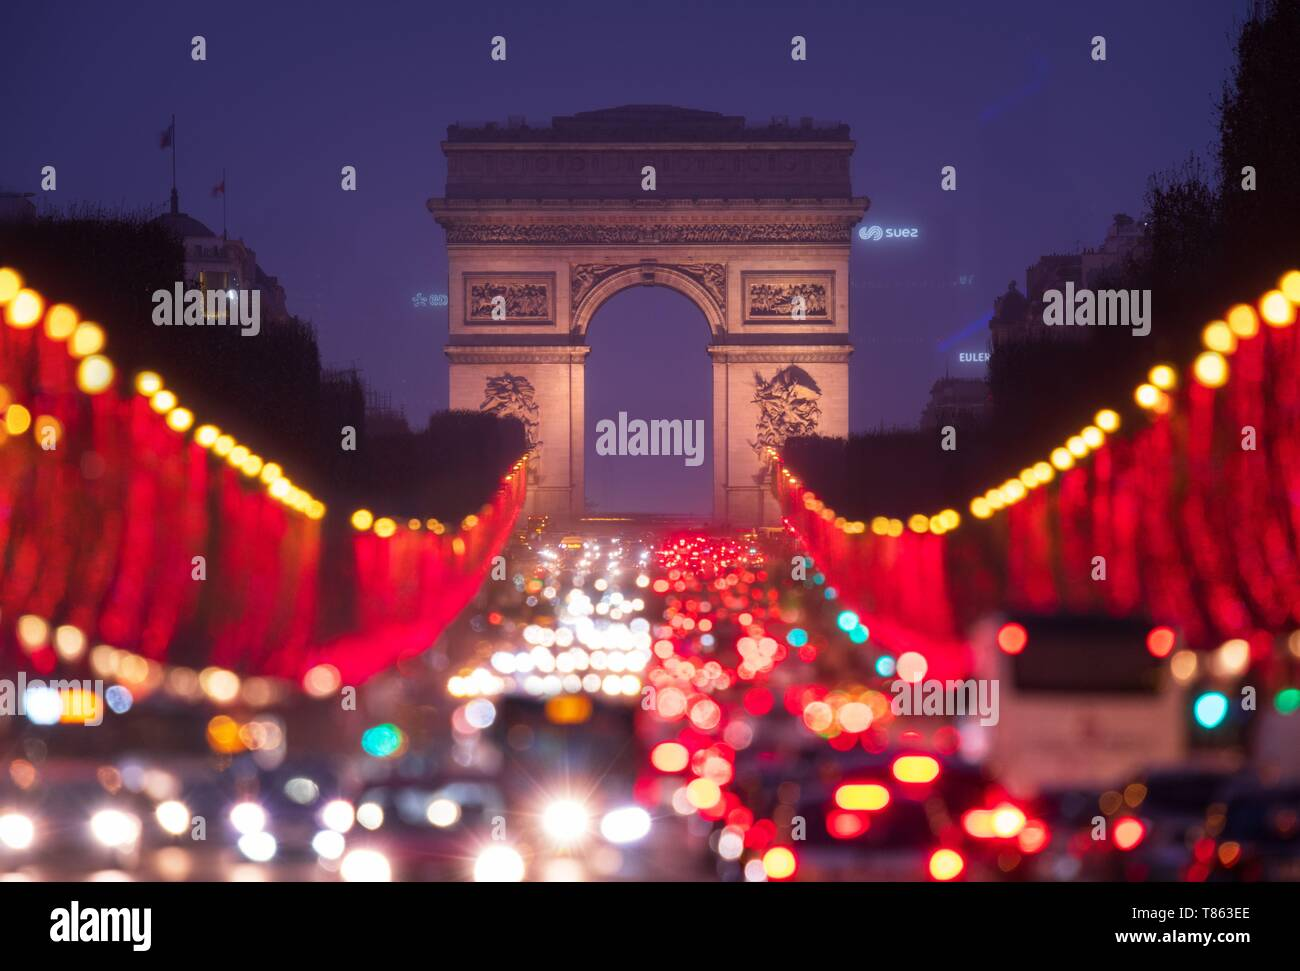 Christmas Lights In Paris.France Paris Champs Elysees With Christmas Lights Stock